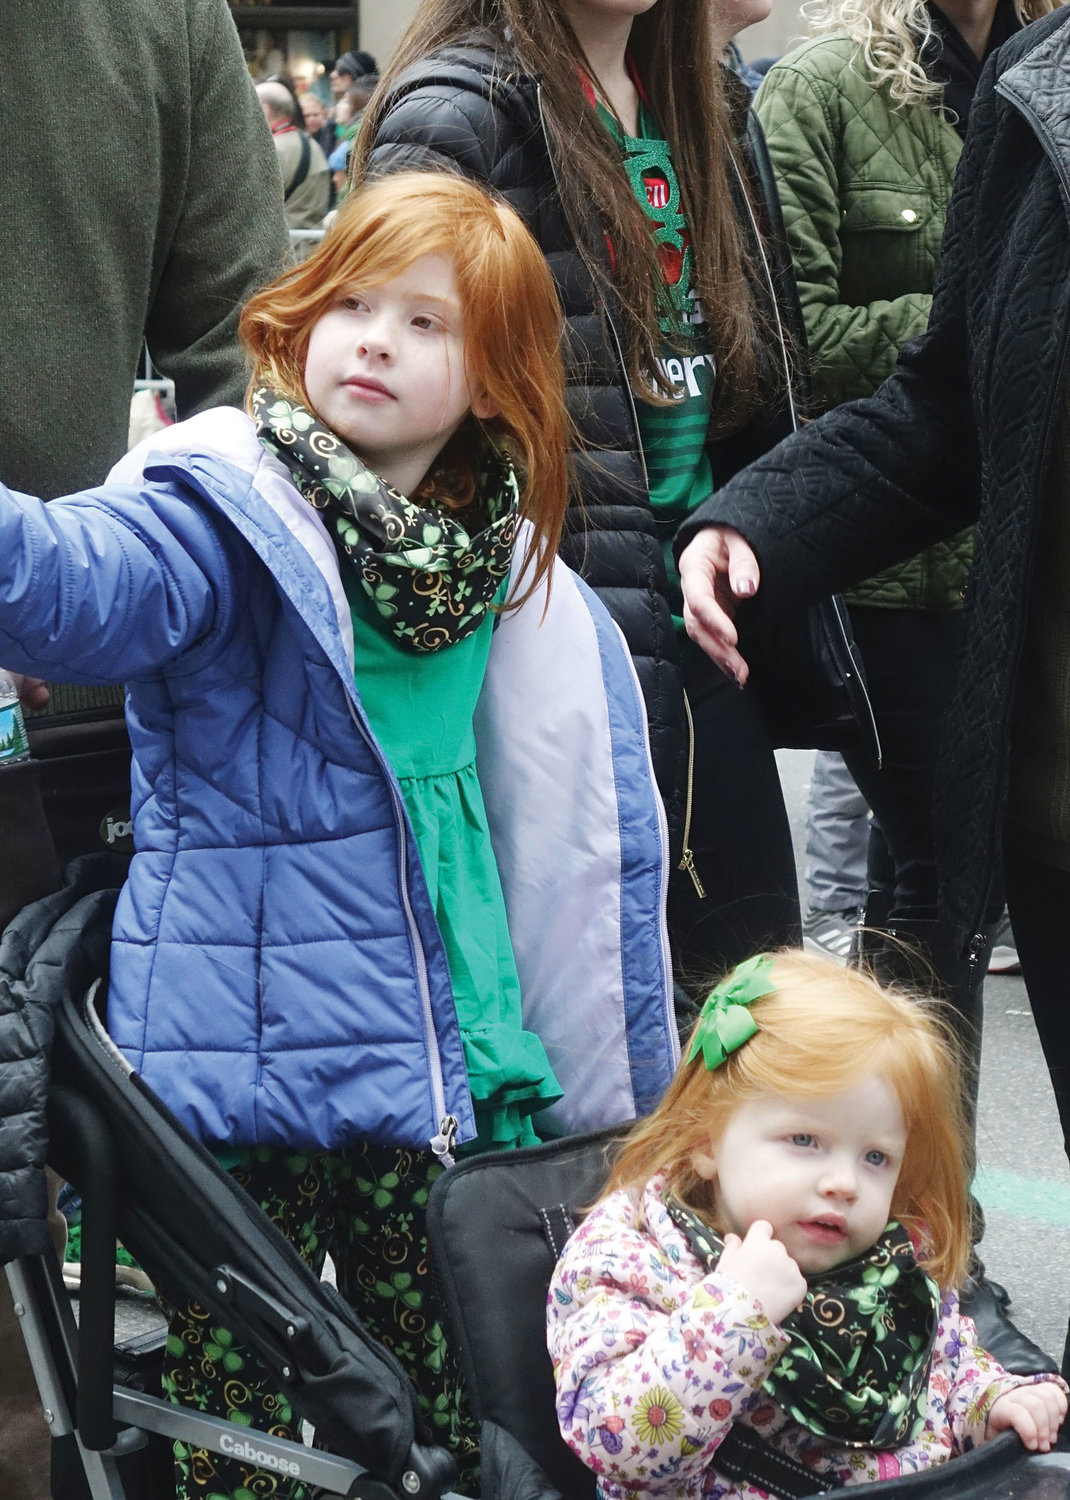 Two ginger-haired young girls enjoy the parade.